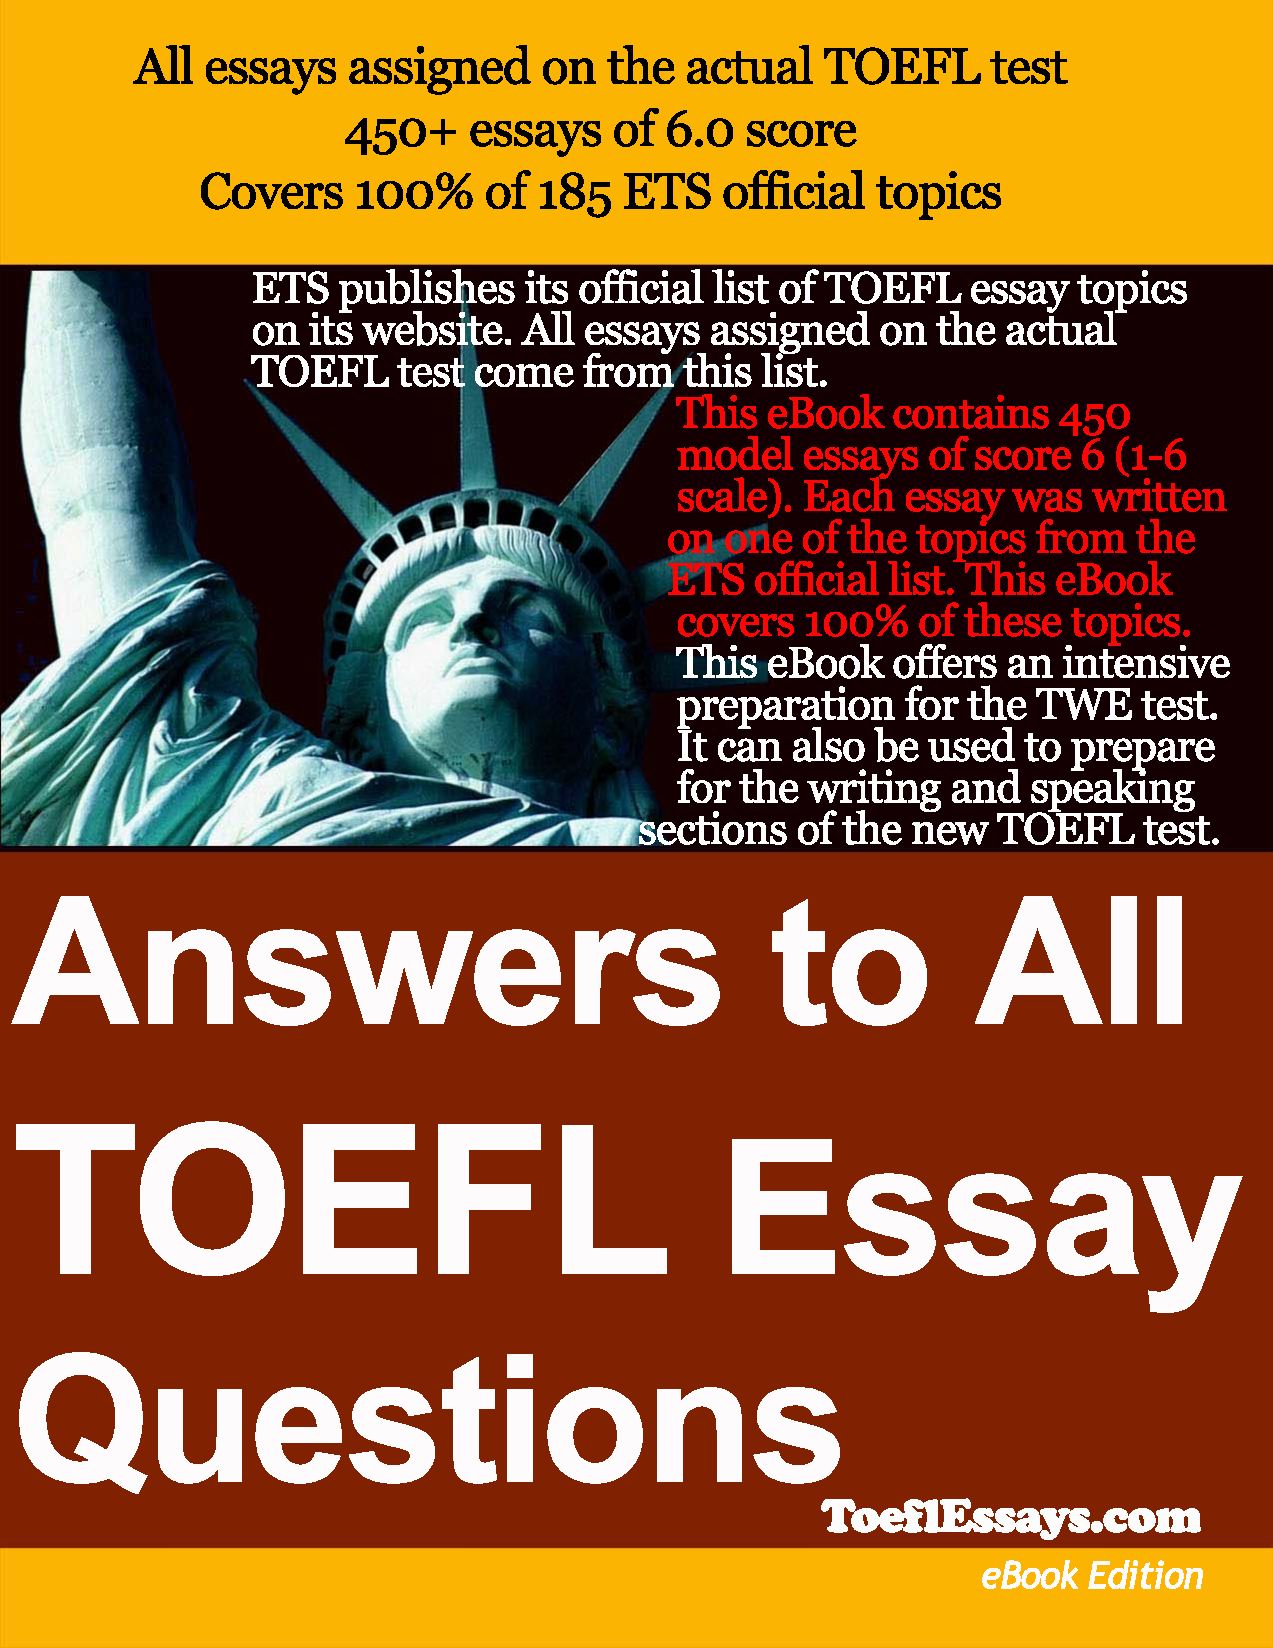 contract law essay questions and answers business law essay law  all essay topics all quiet on the western front essay topics answers to all toefl essay